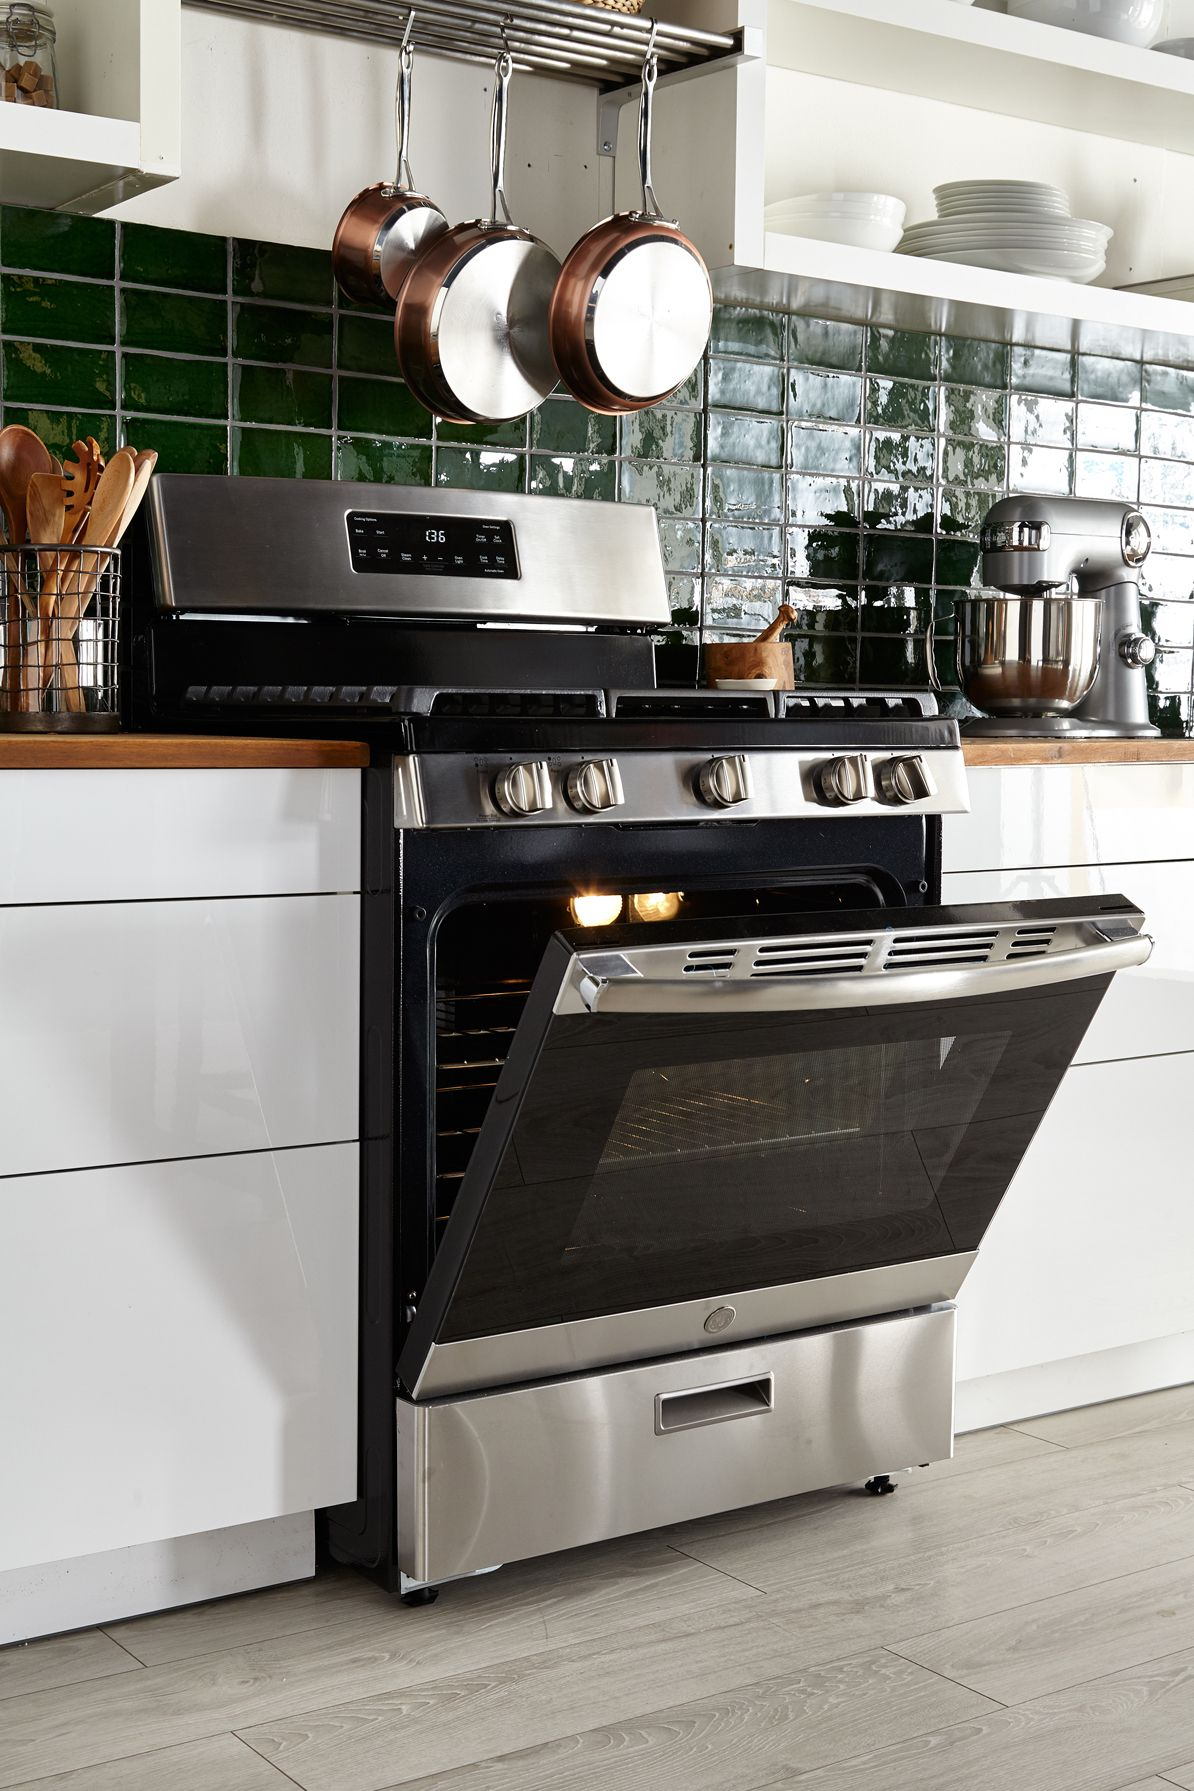 Ge freestanding steamclean gas range with images